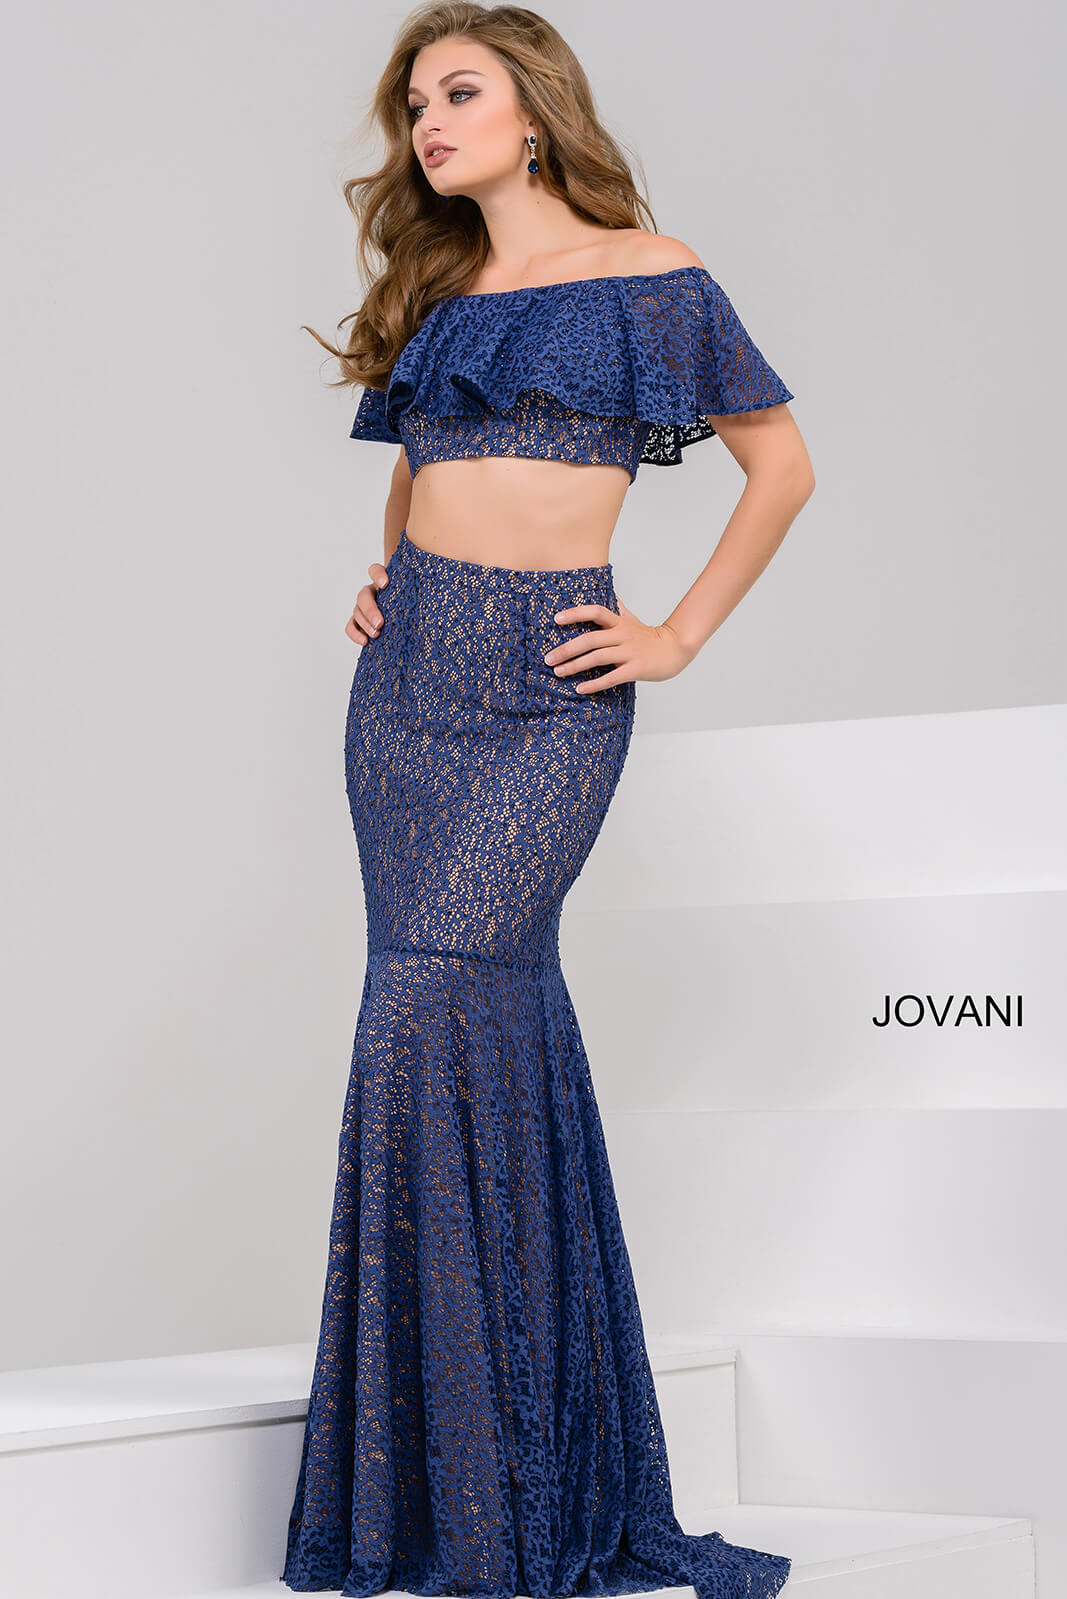 jovani Navy Lace Two Piece Off the Shoulder Prom Dress JP49740